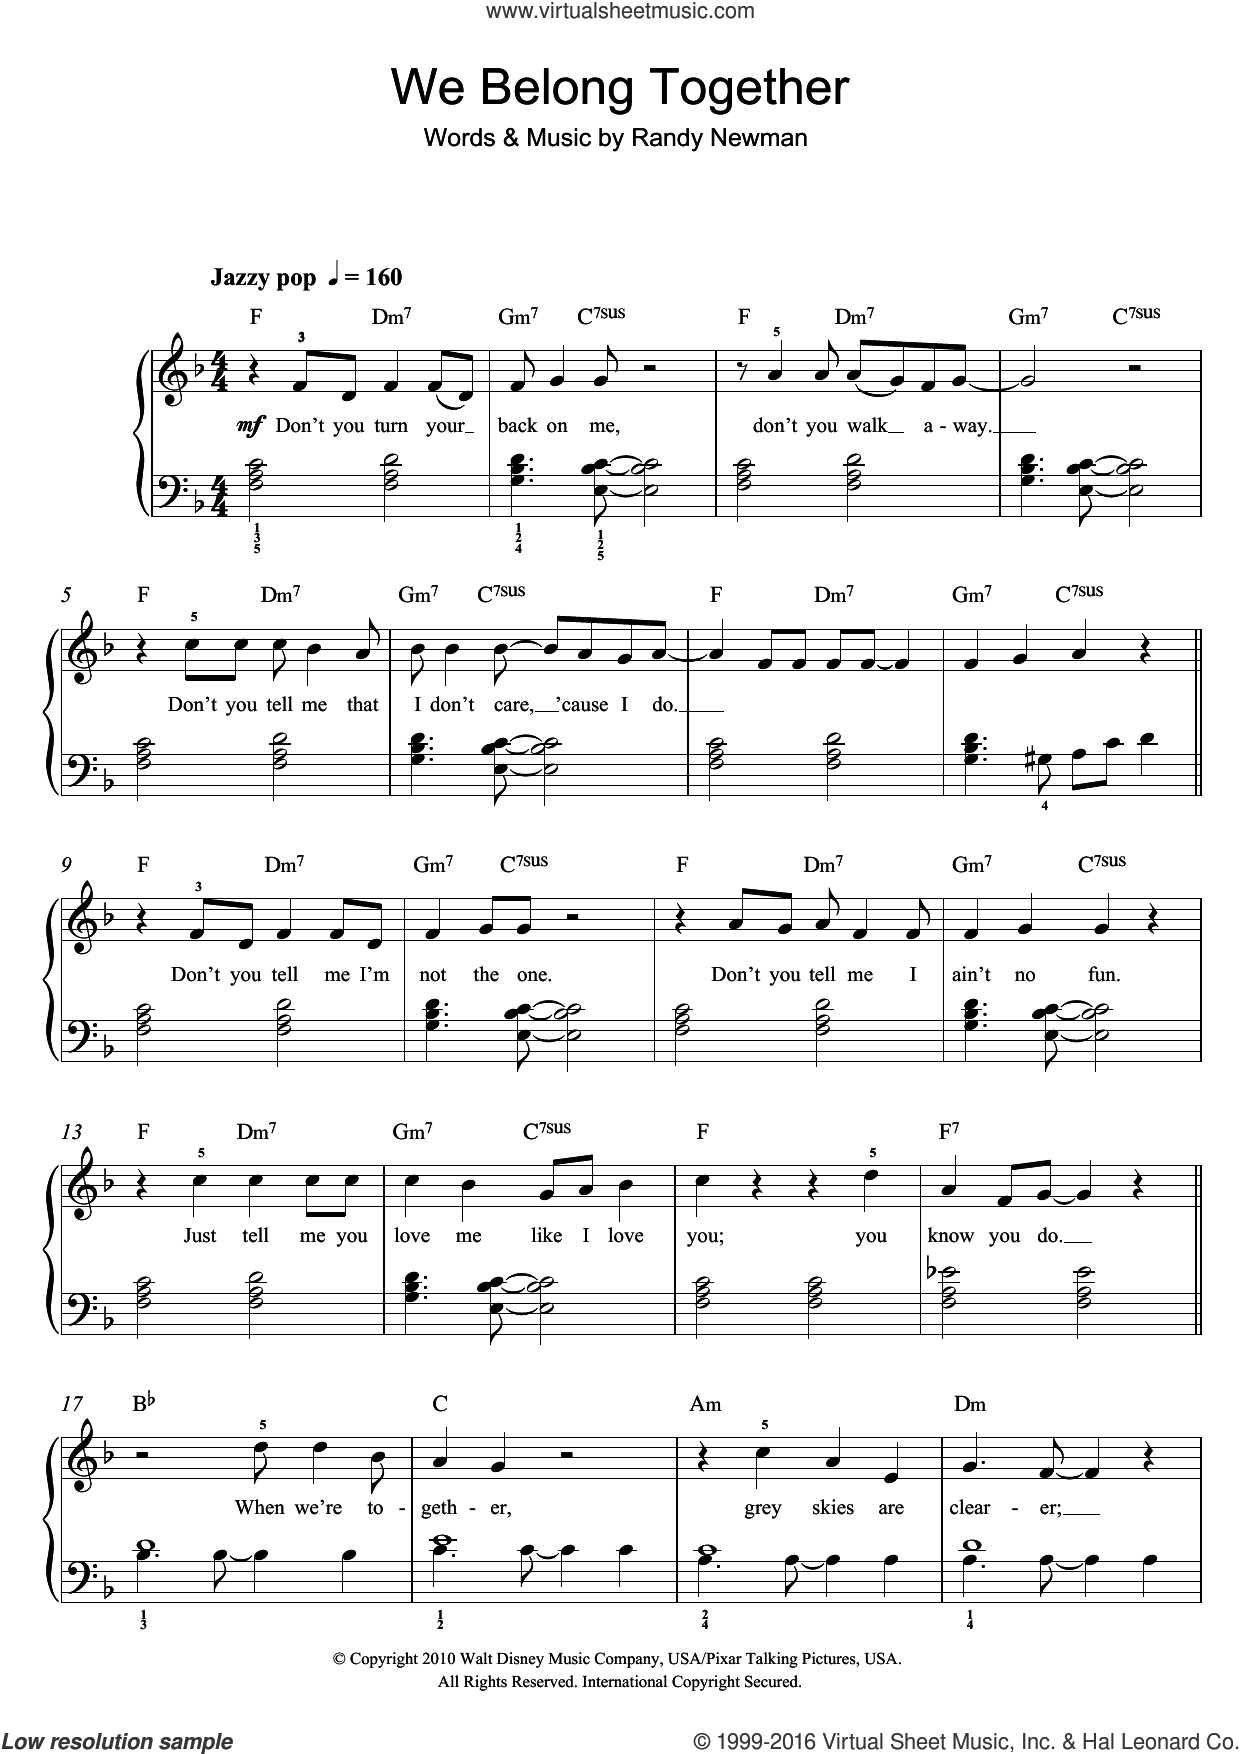 We Belong Together (From Toy Story 3) sheet music for voice, piano or guitar by Randy Newman, intermediate skill level